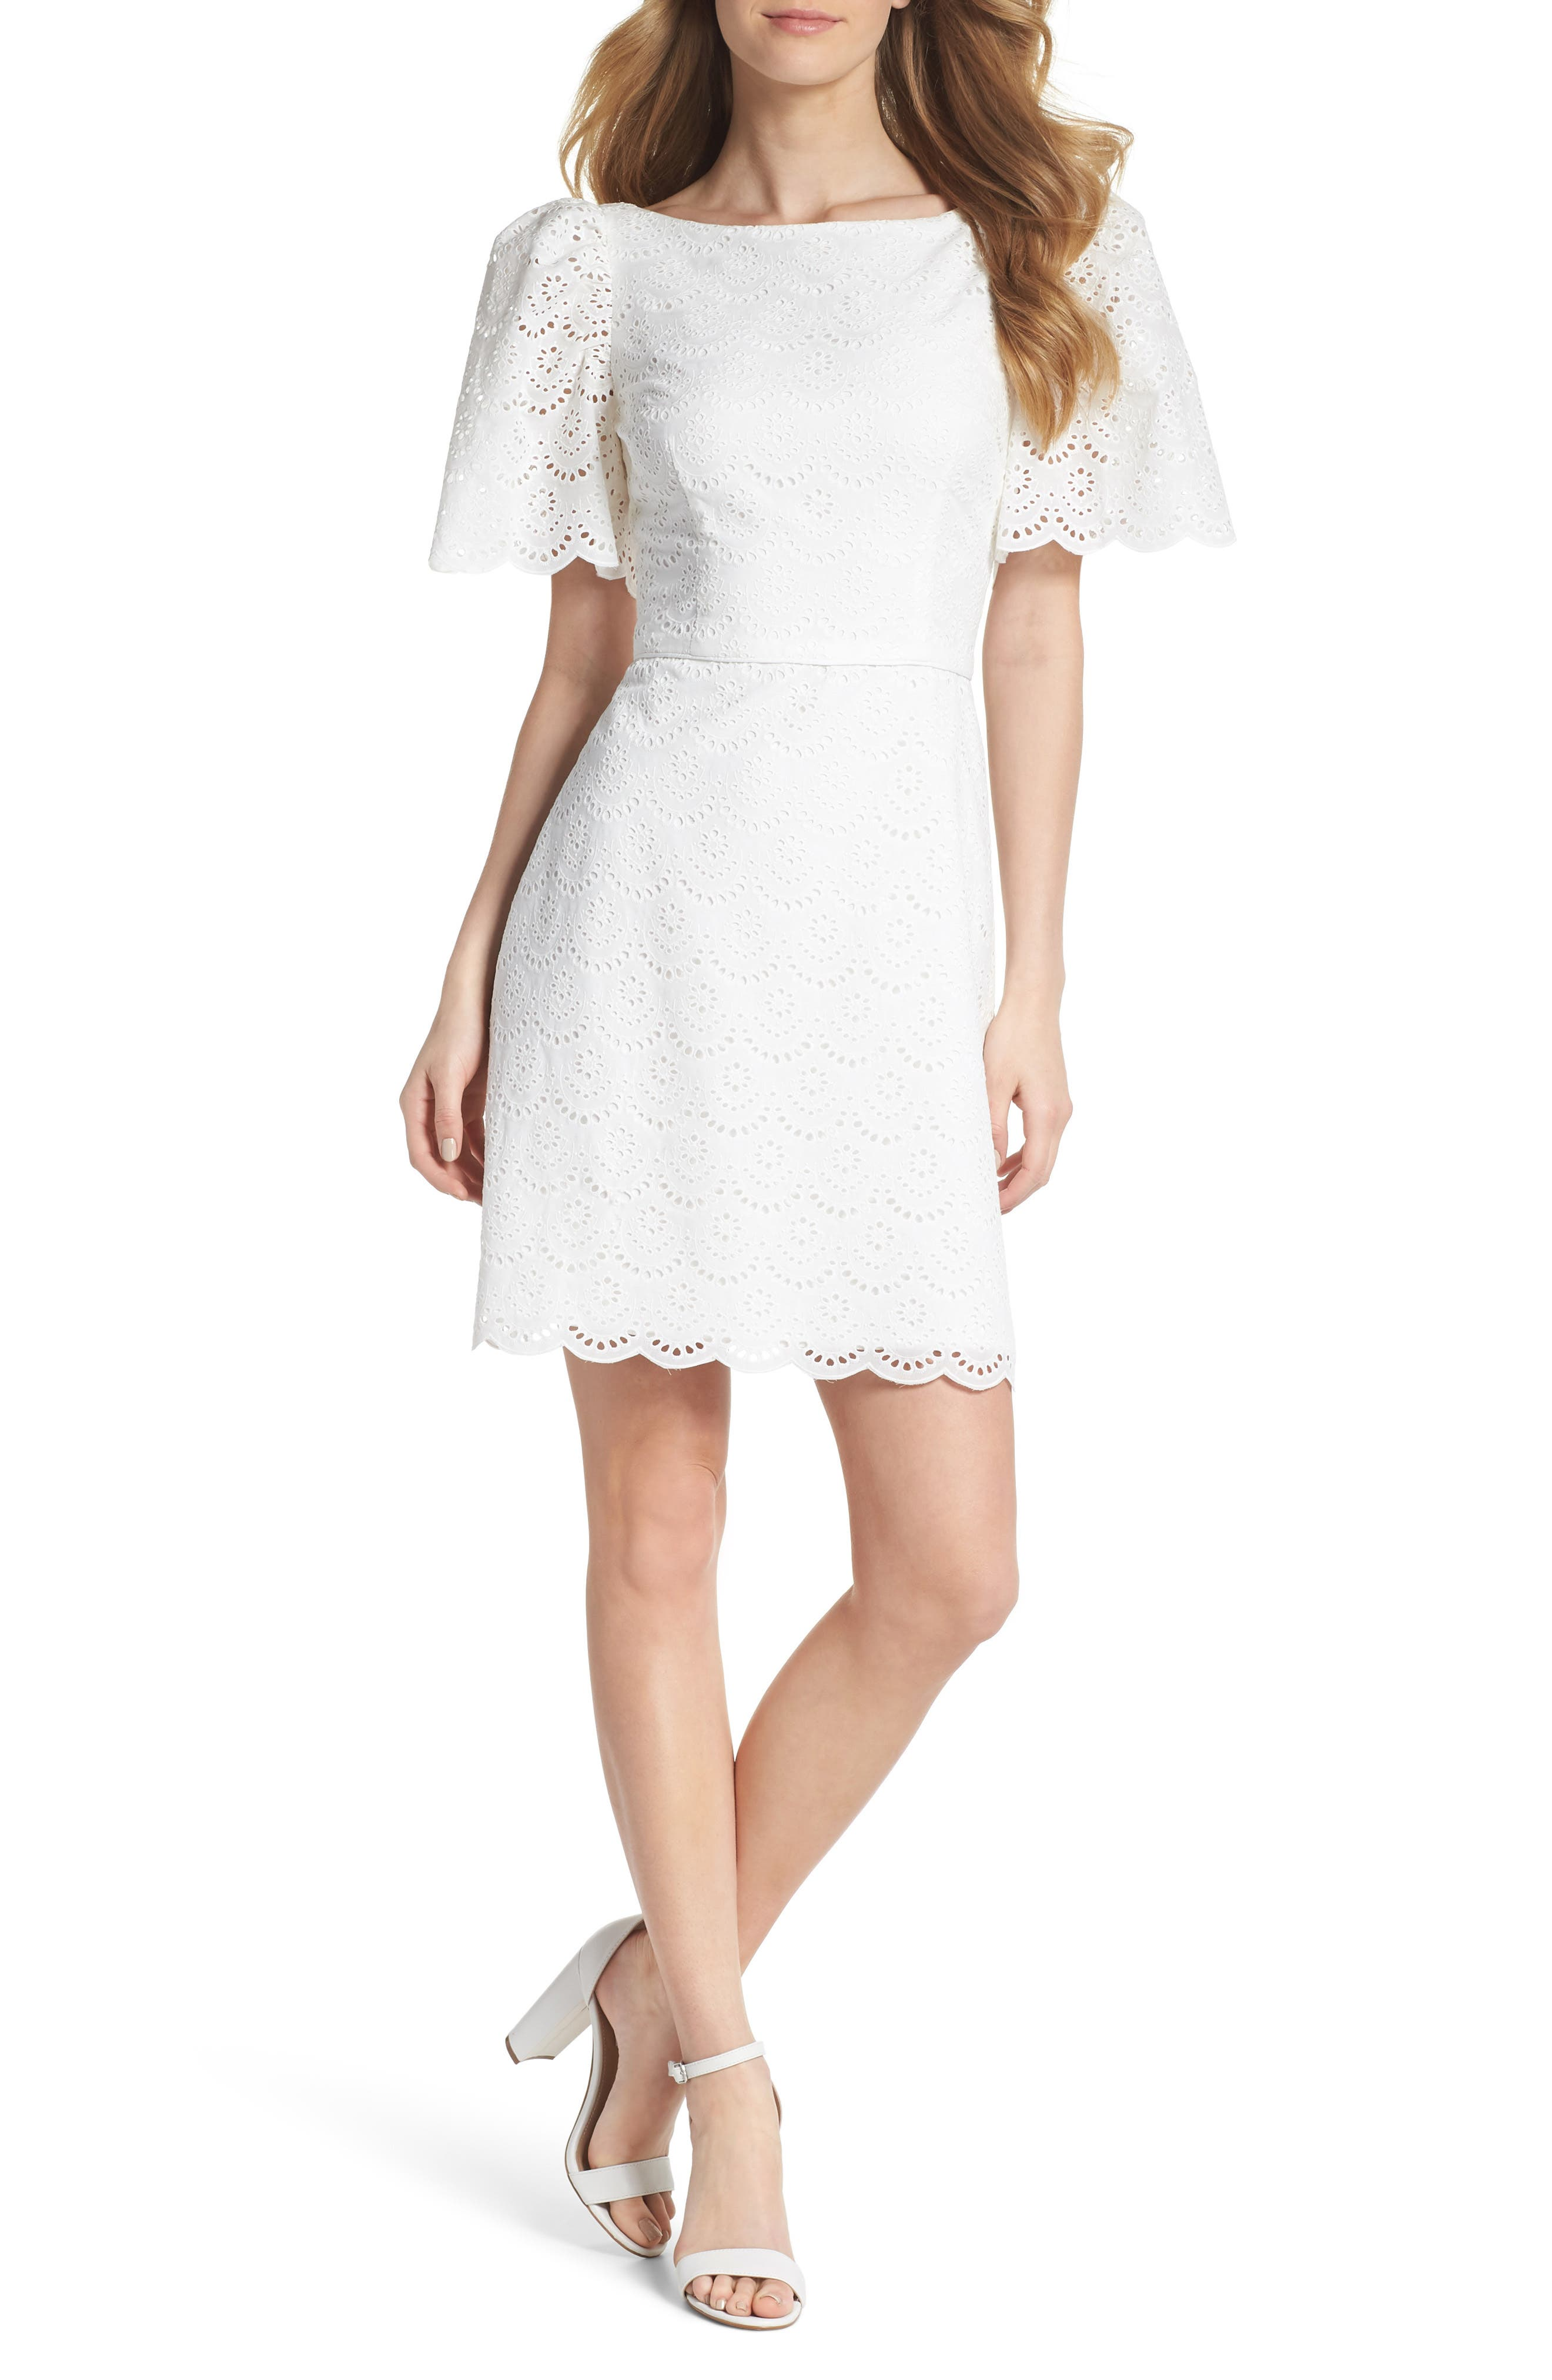 Gal Meets Glam Collection Blythe Scallop Eyelet Dress (Nordstrom Exclusive)